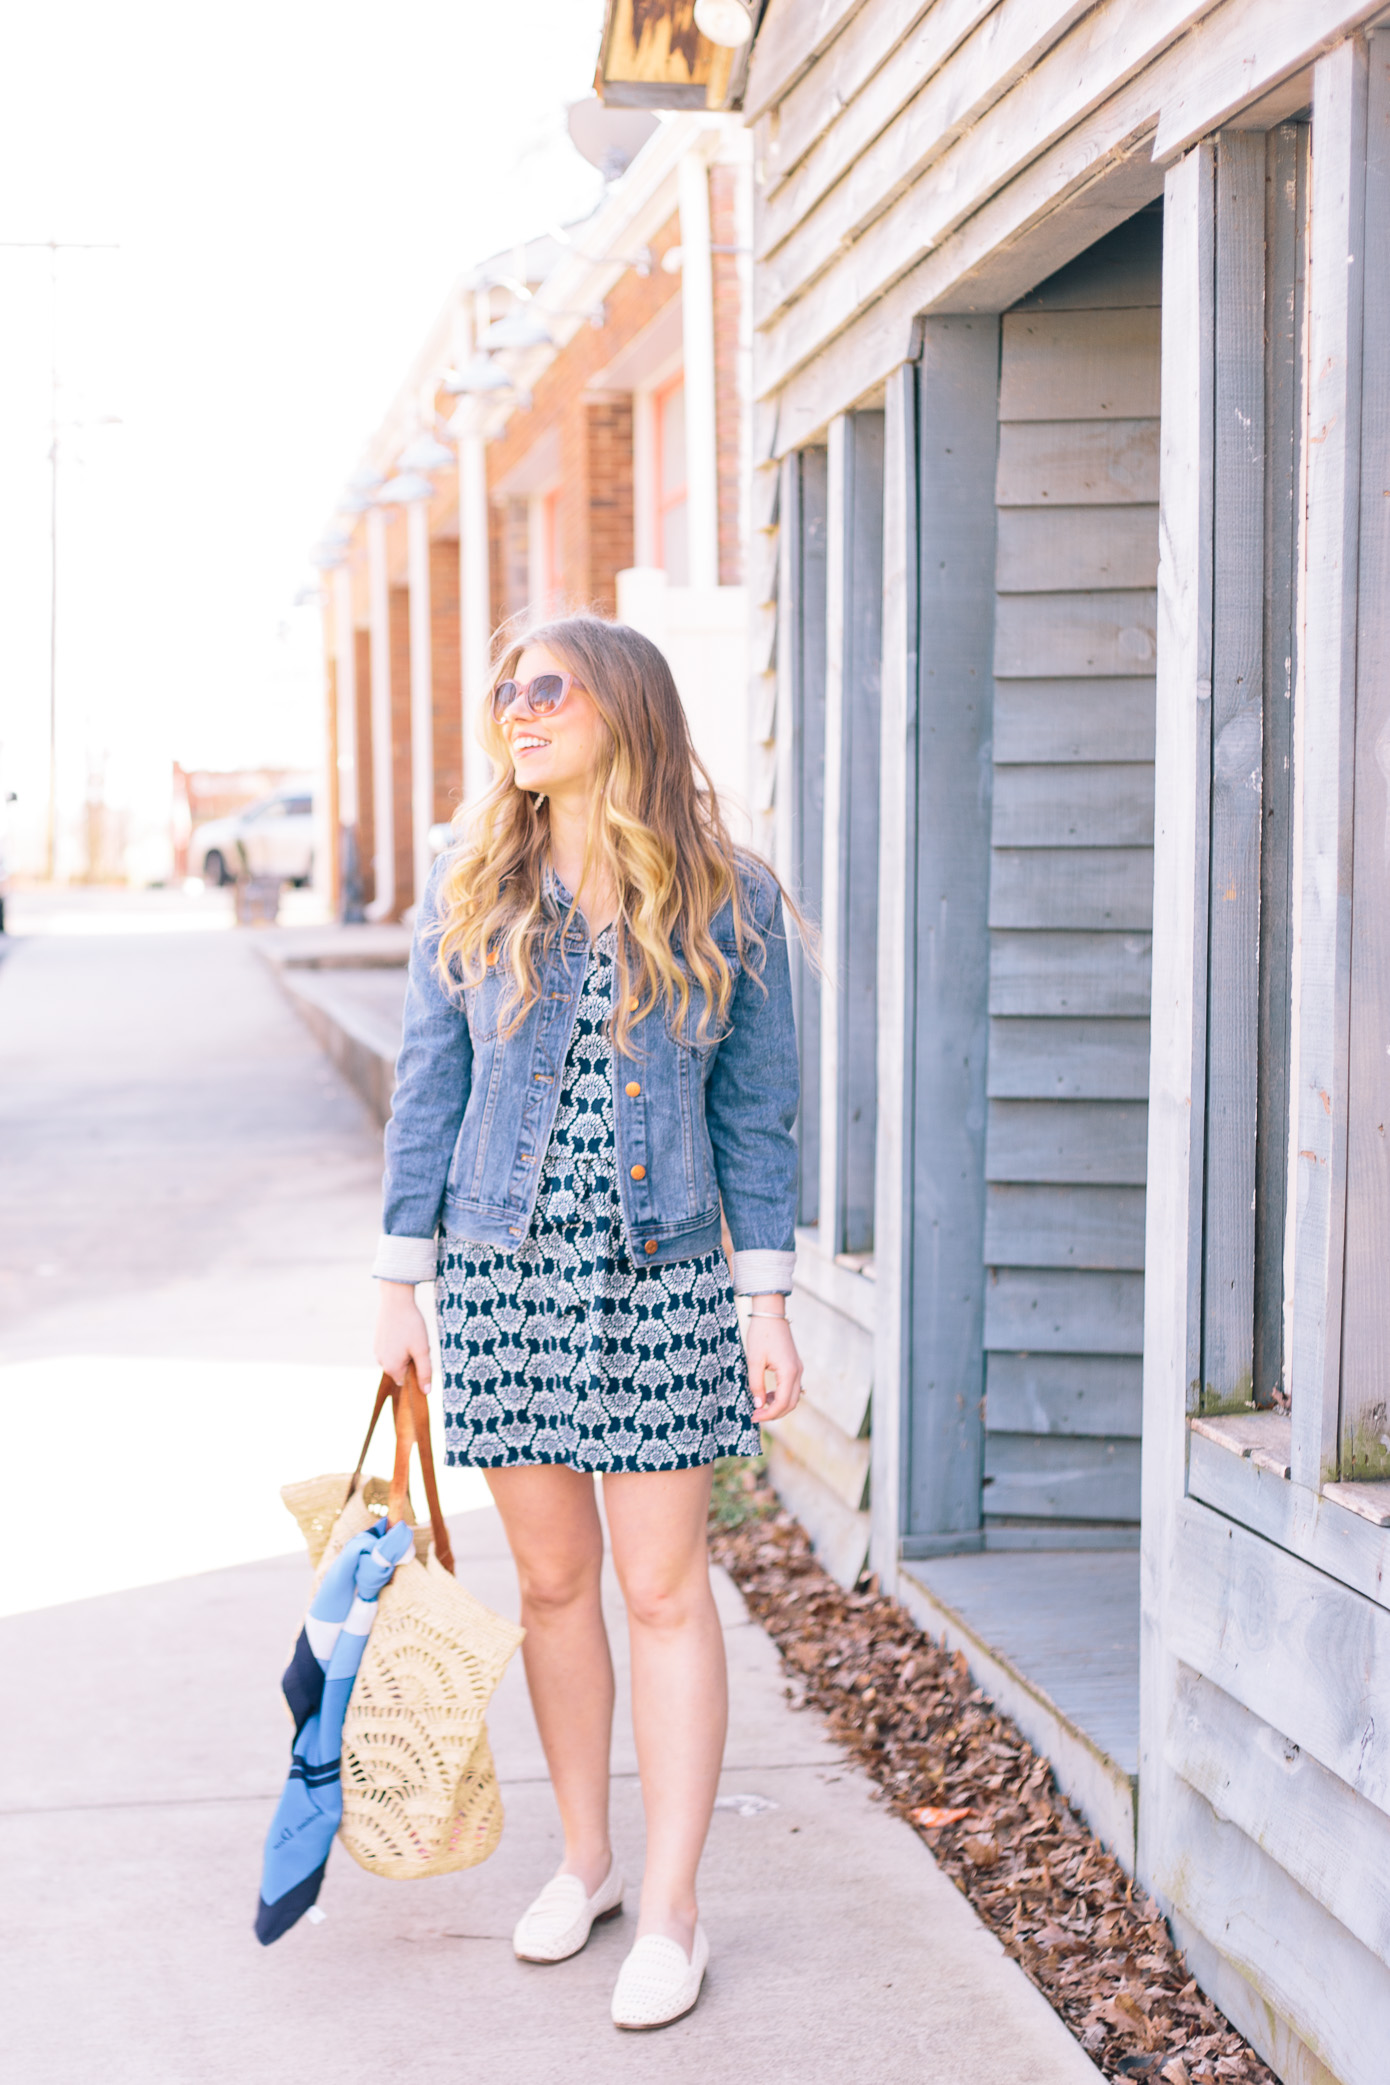 Casual Knit Dress for Spring | Louella Reese Life & Style Blog